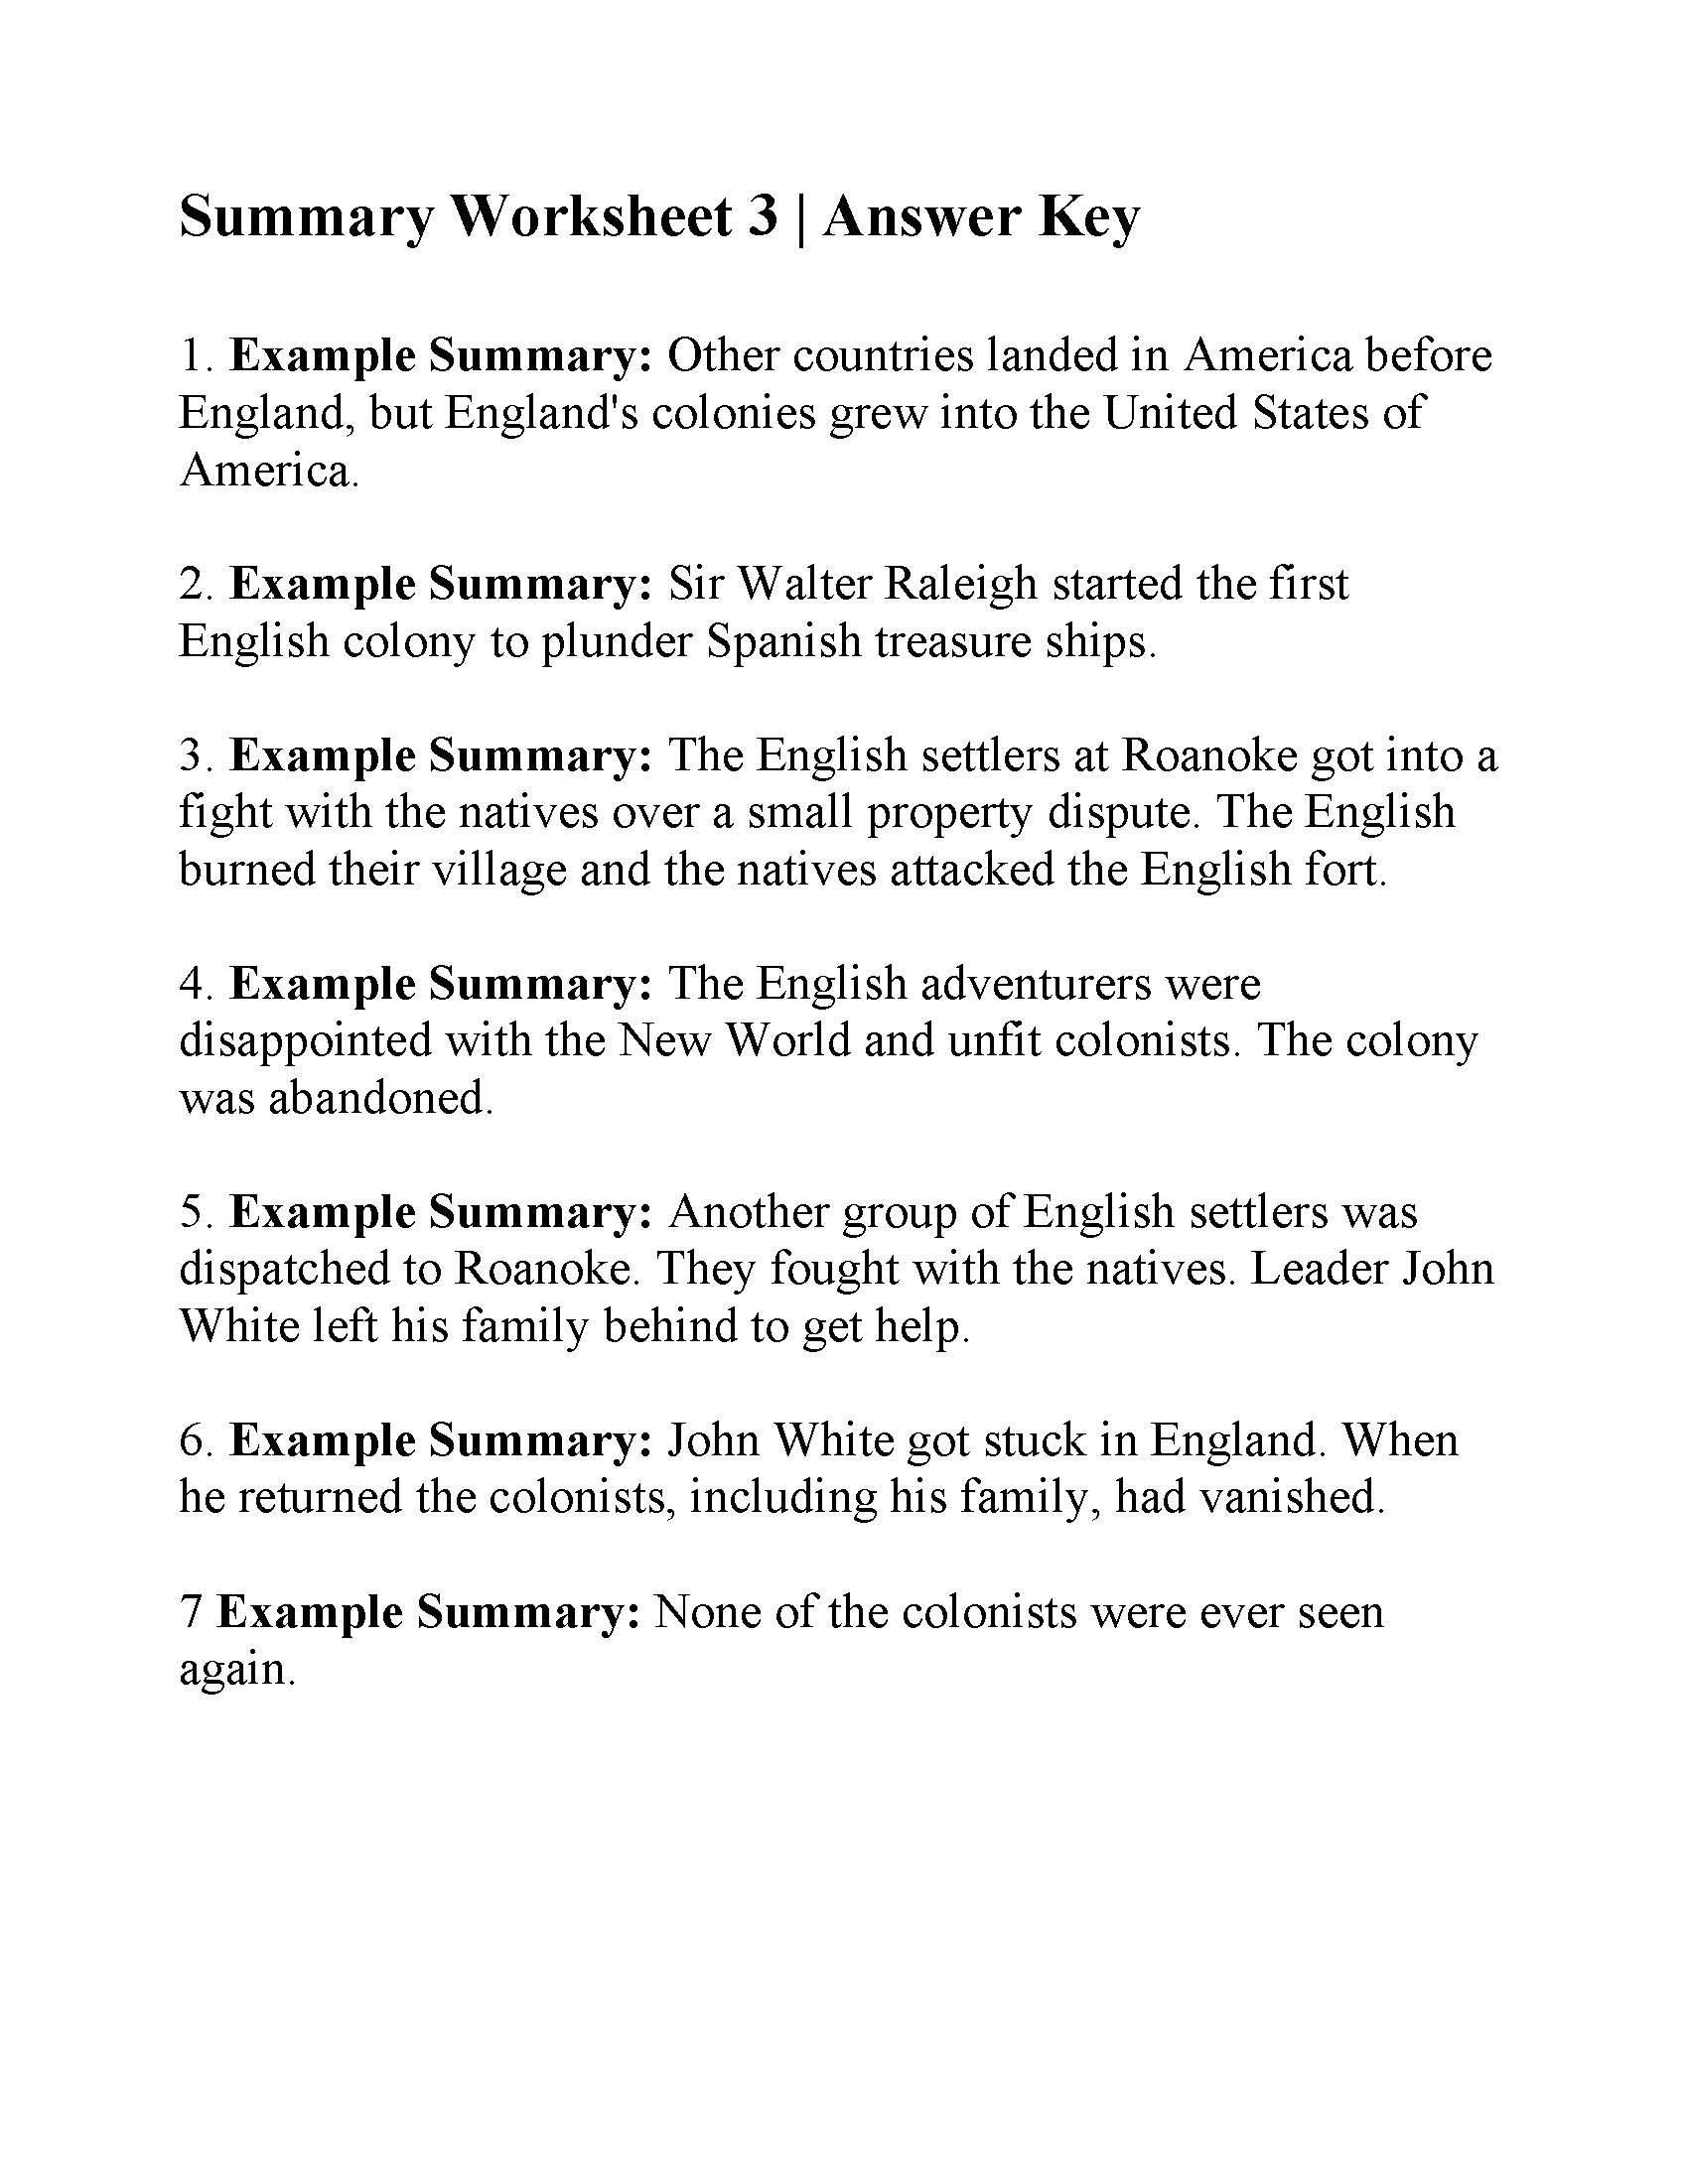 Summarizing Worksheet 3rd Grade This is the Answer Key for the Summary Worksheet 3